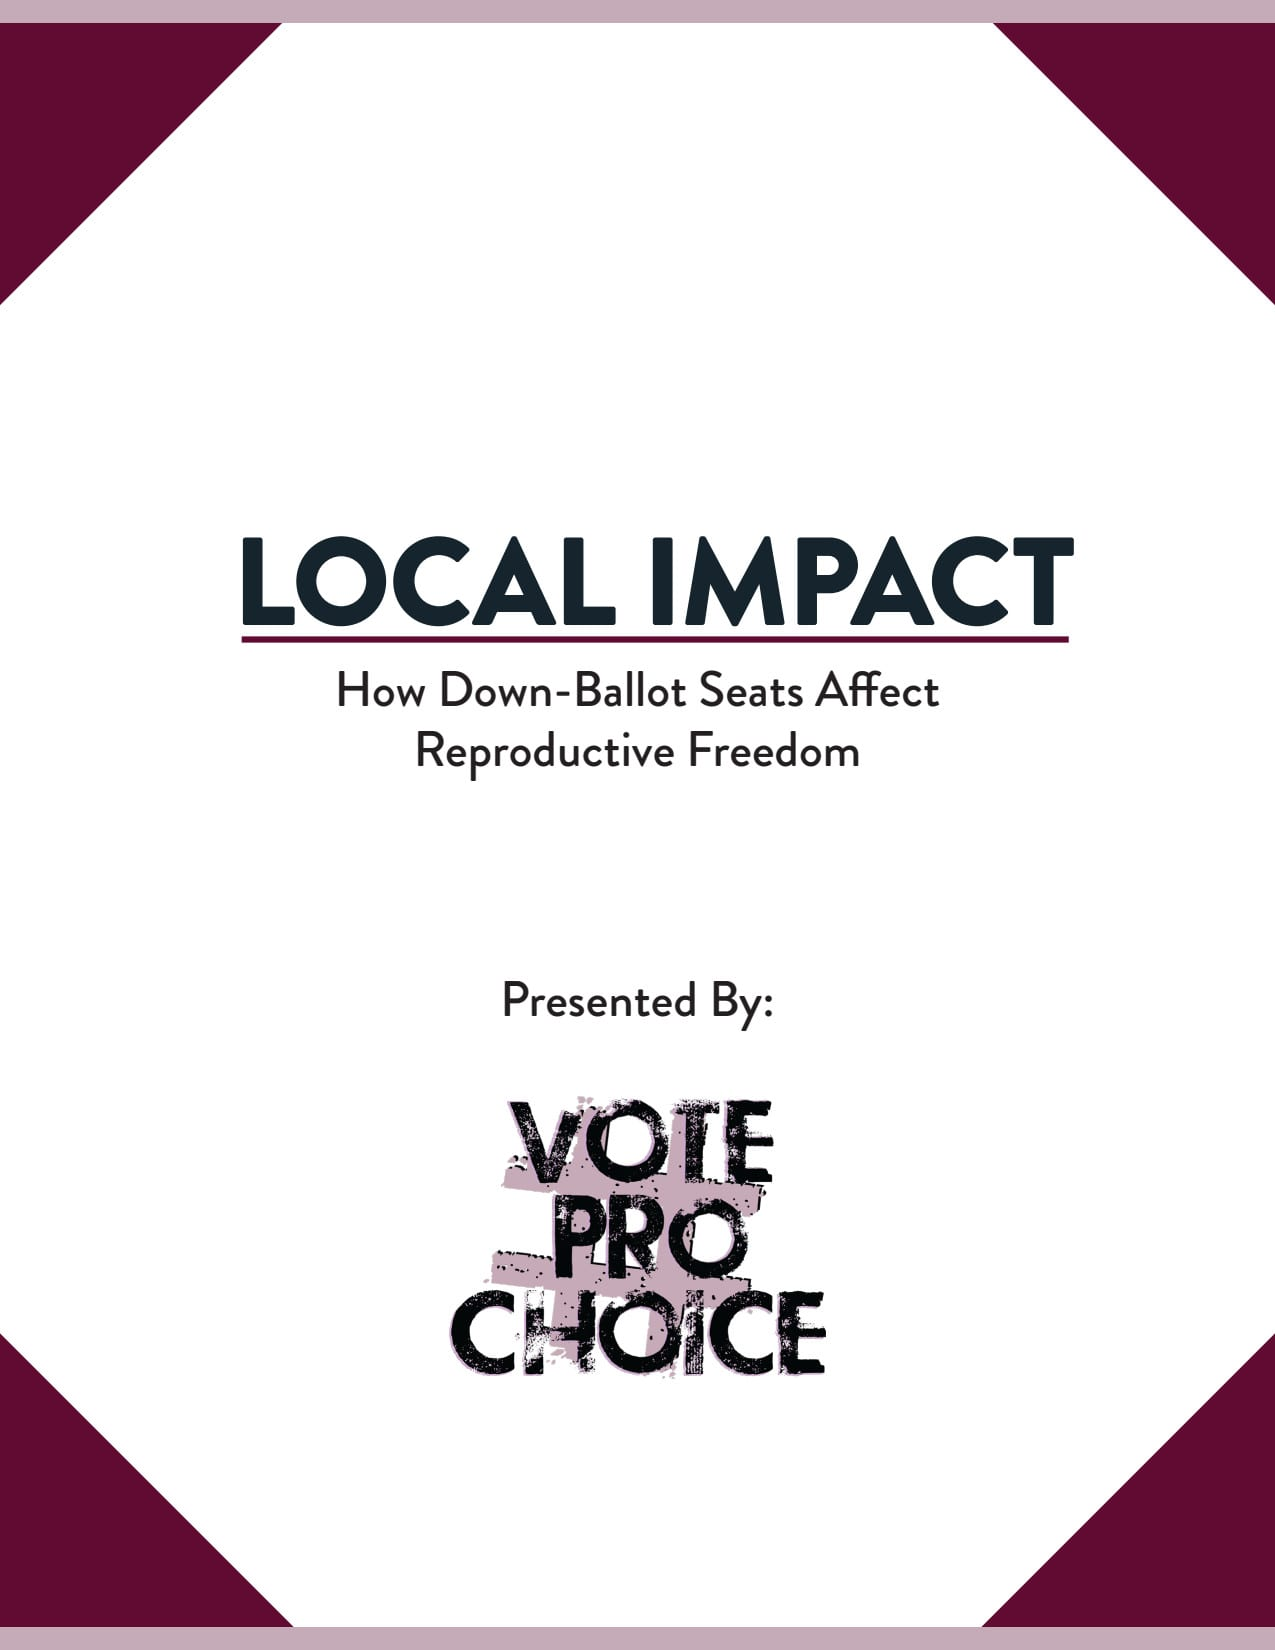 Local Impact: How Down-Ballot Seats Affect Reproductive Freedom